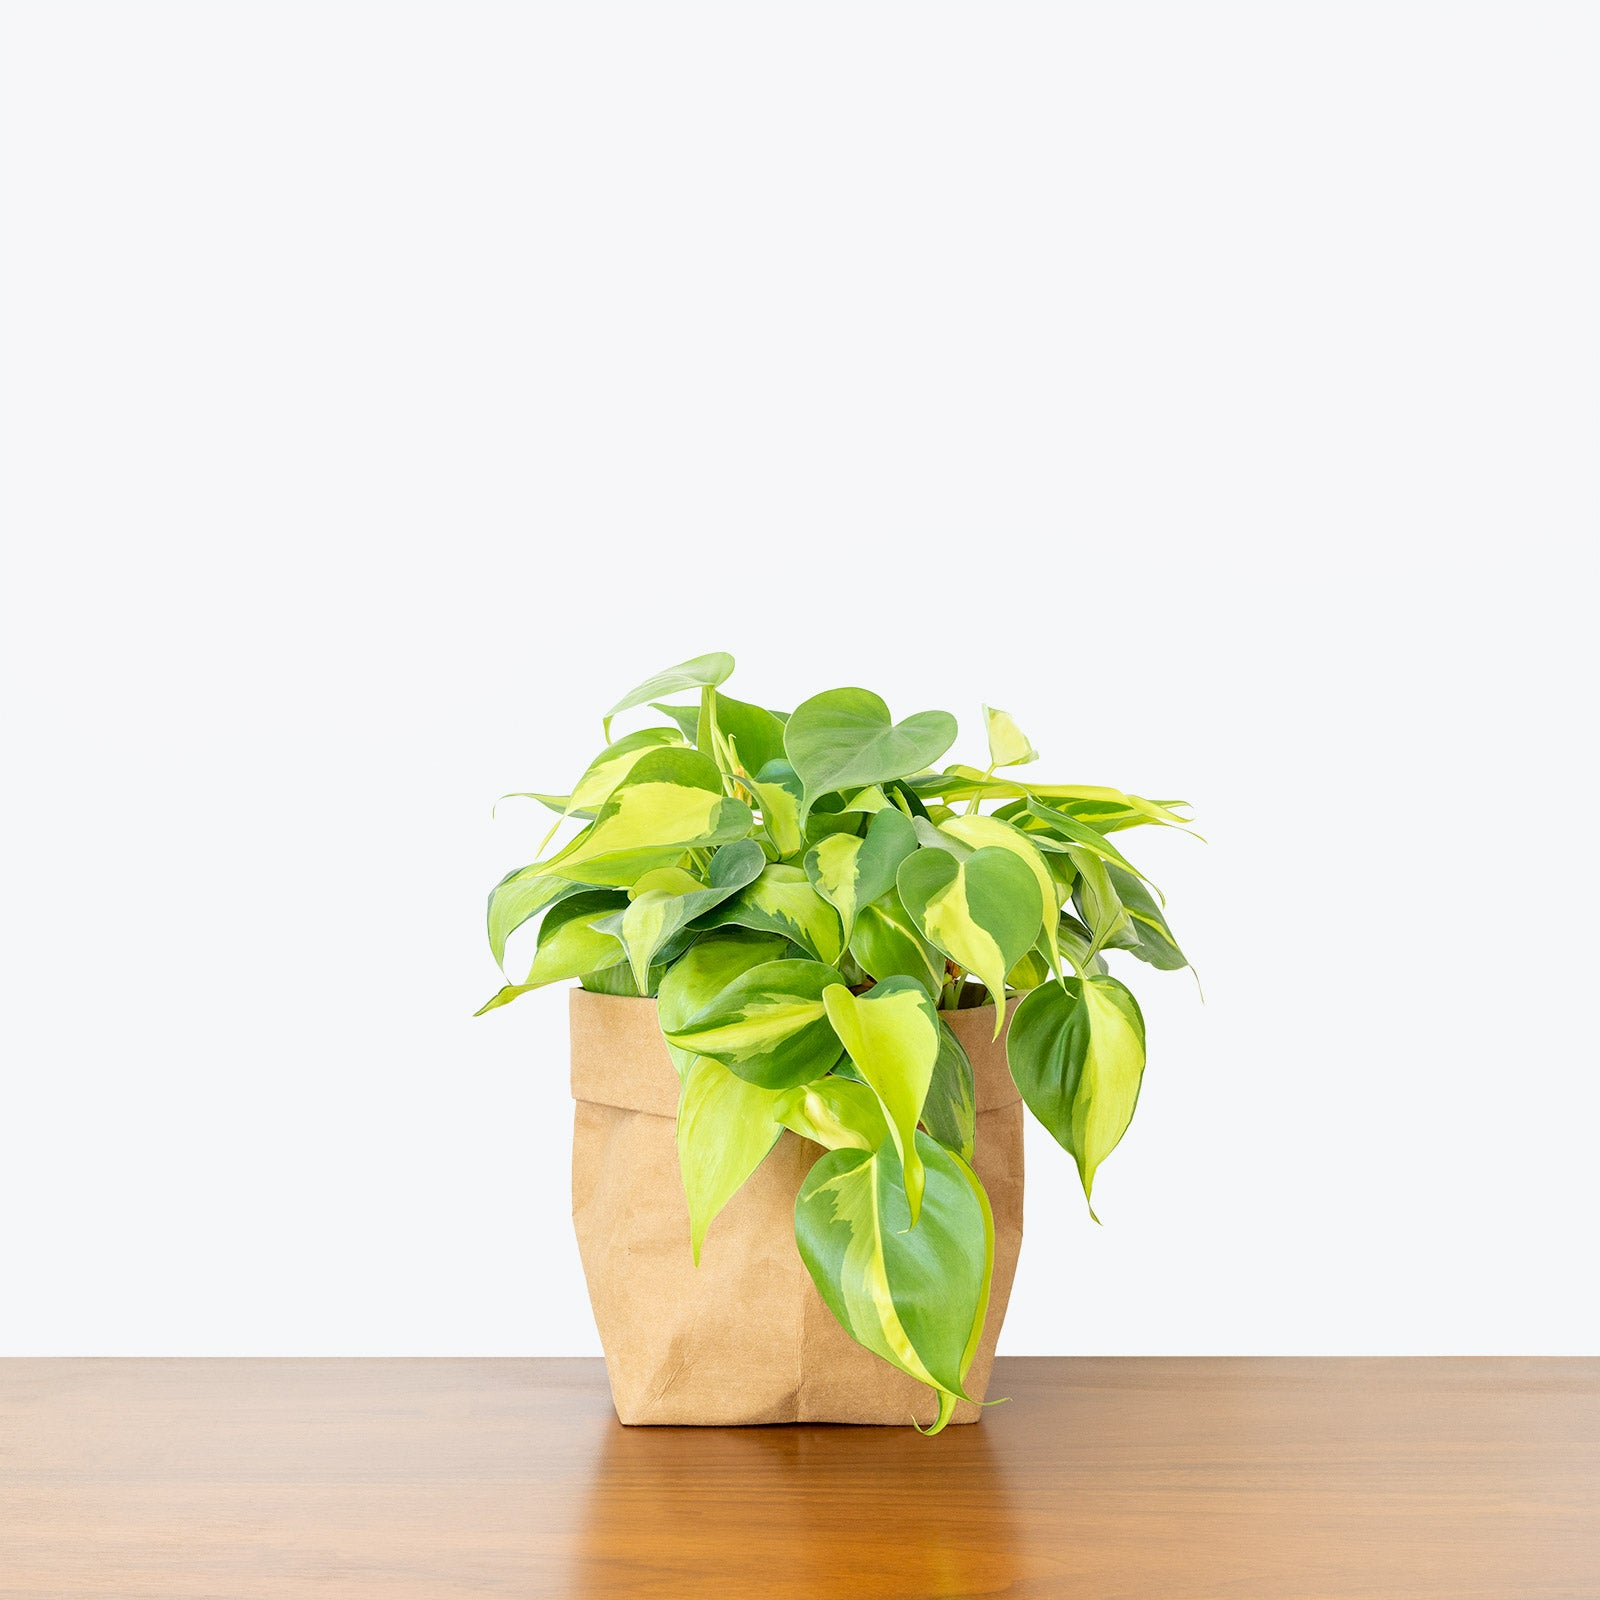 Example of trailing Philodendron: Philodendron Hederaceum Brasil